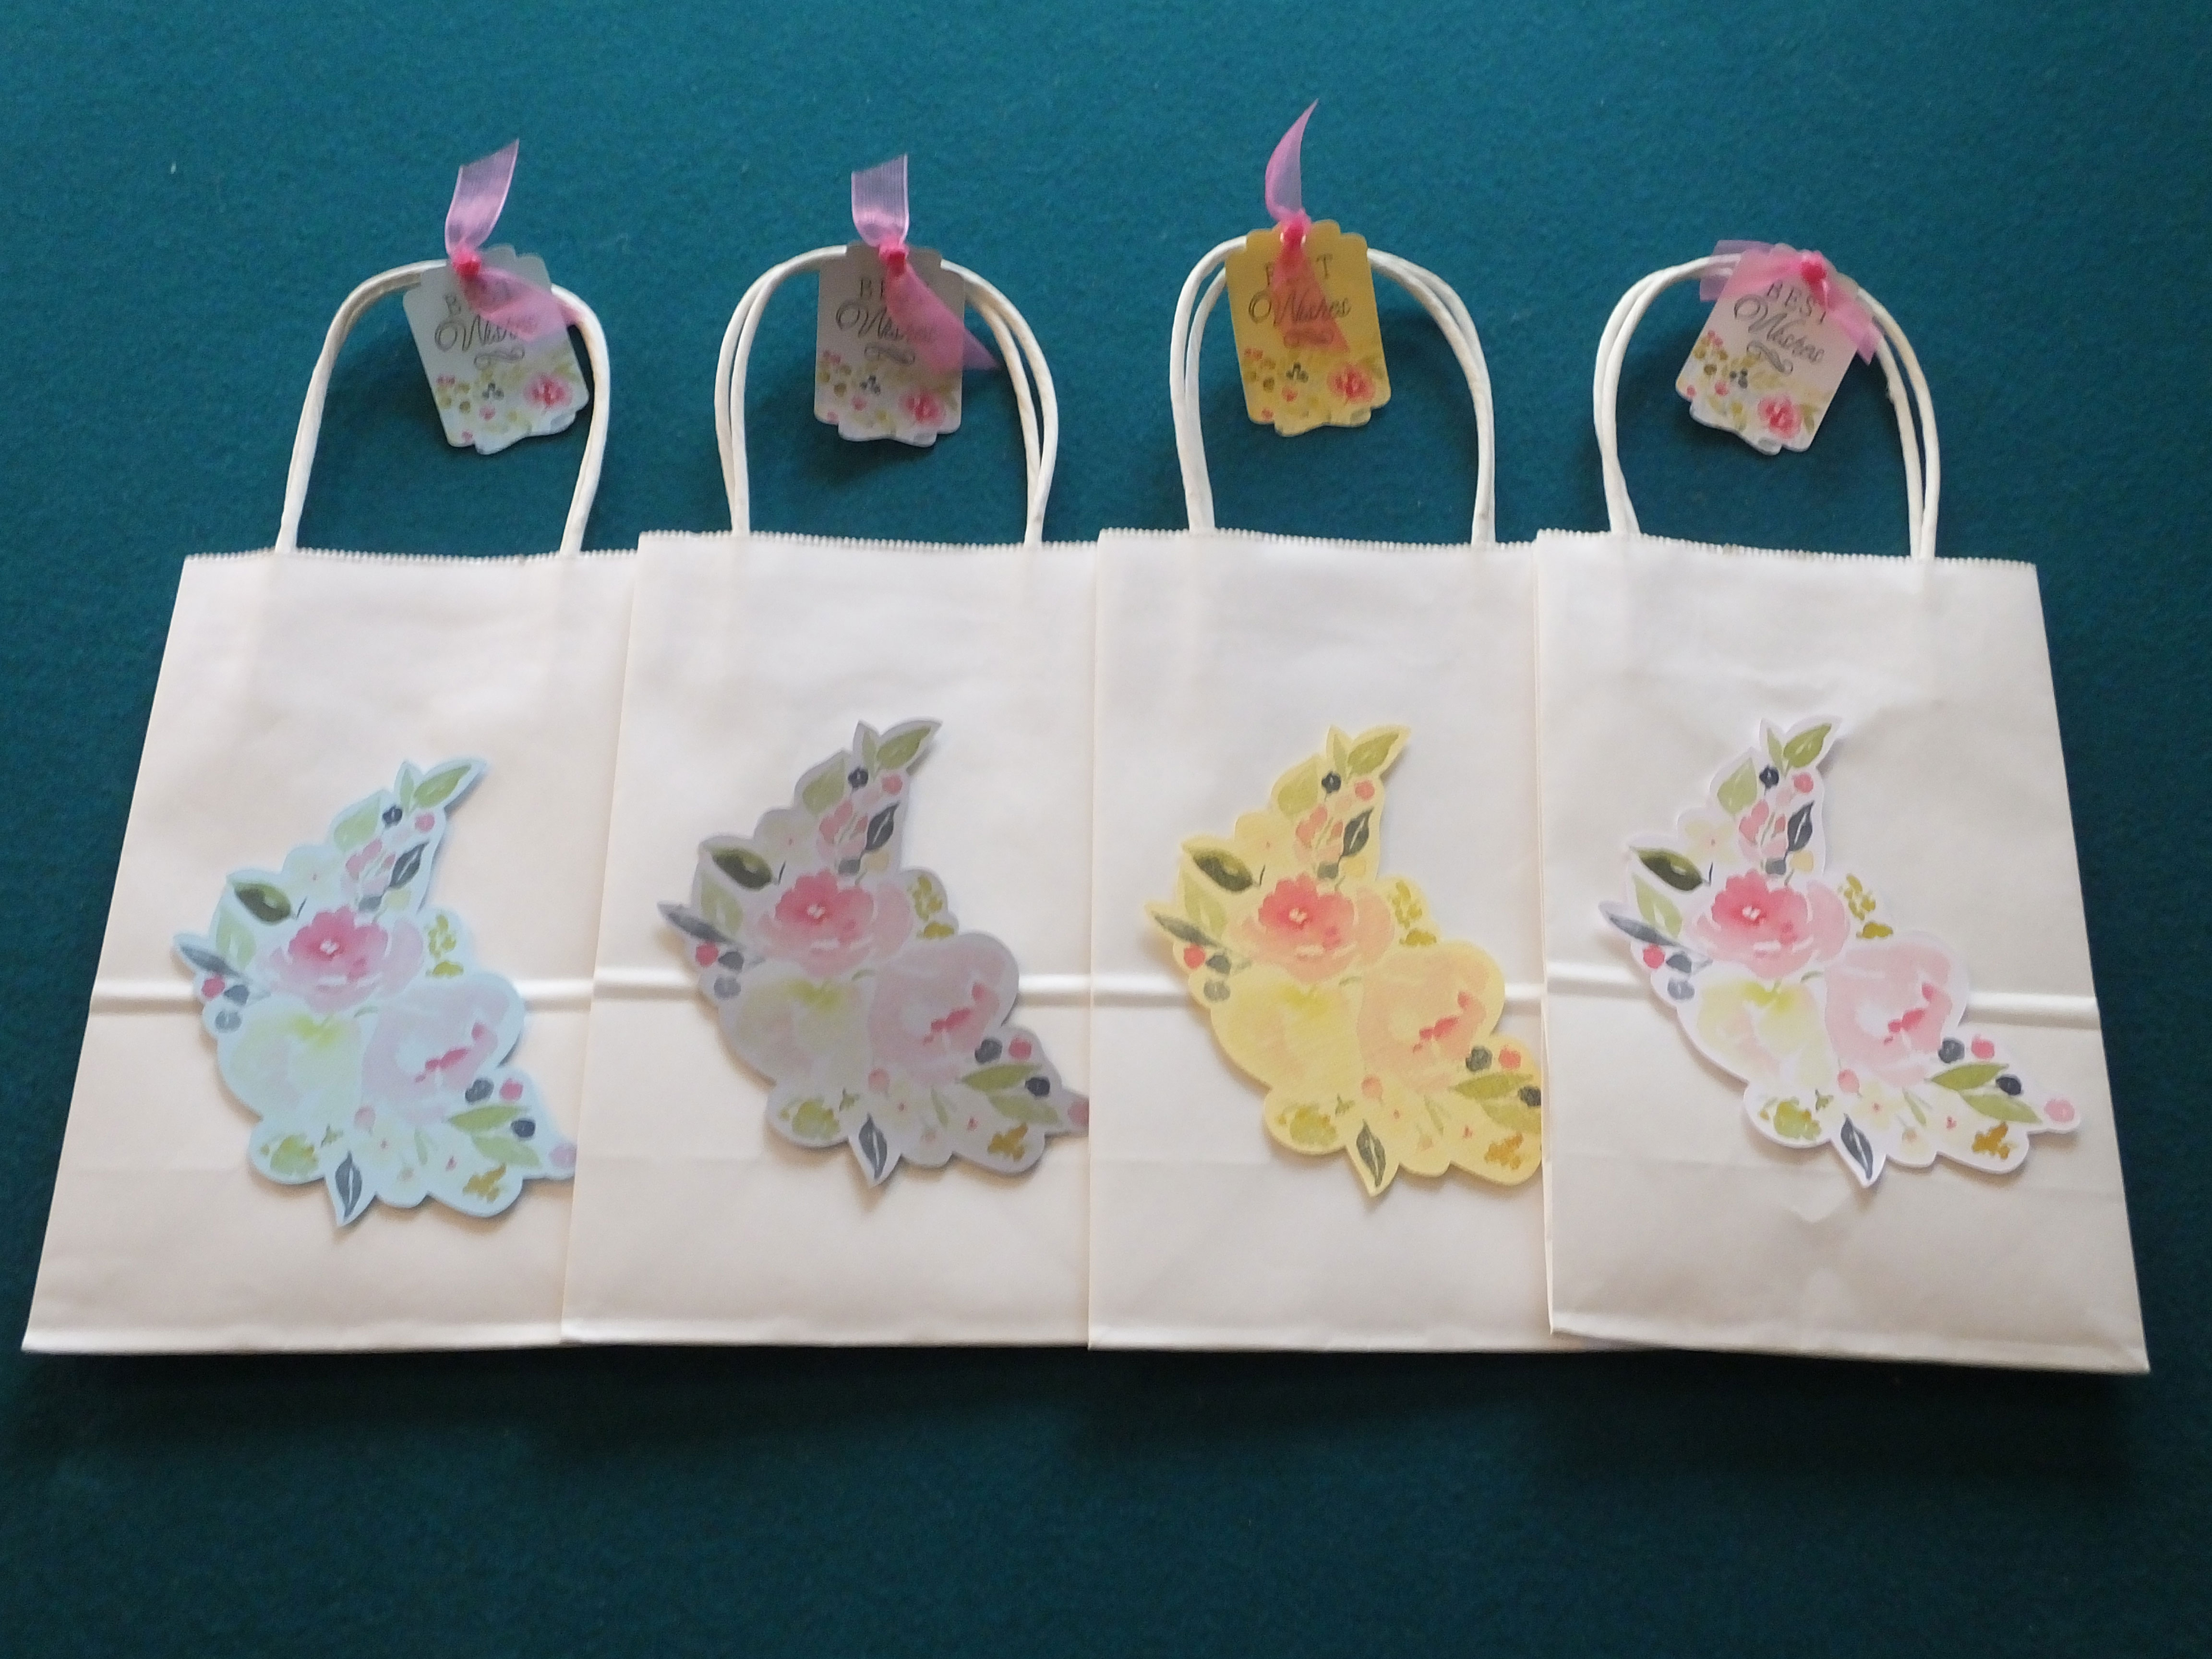 Best Wishes Gift Bags in Different Colored Papers